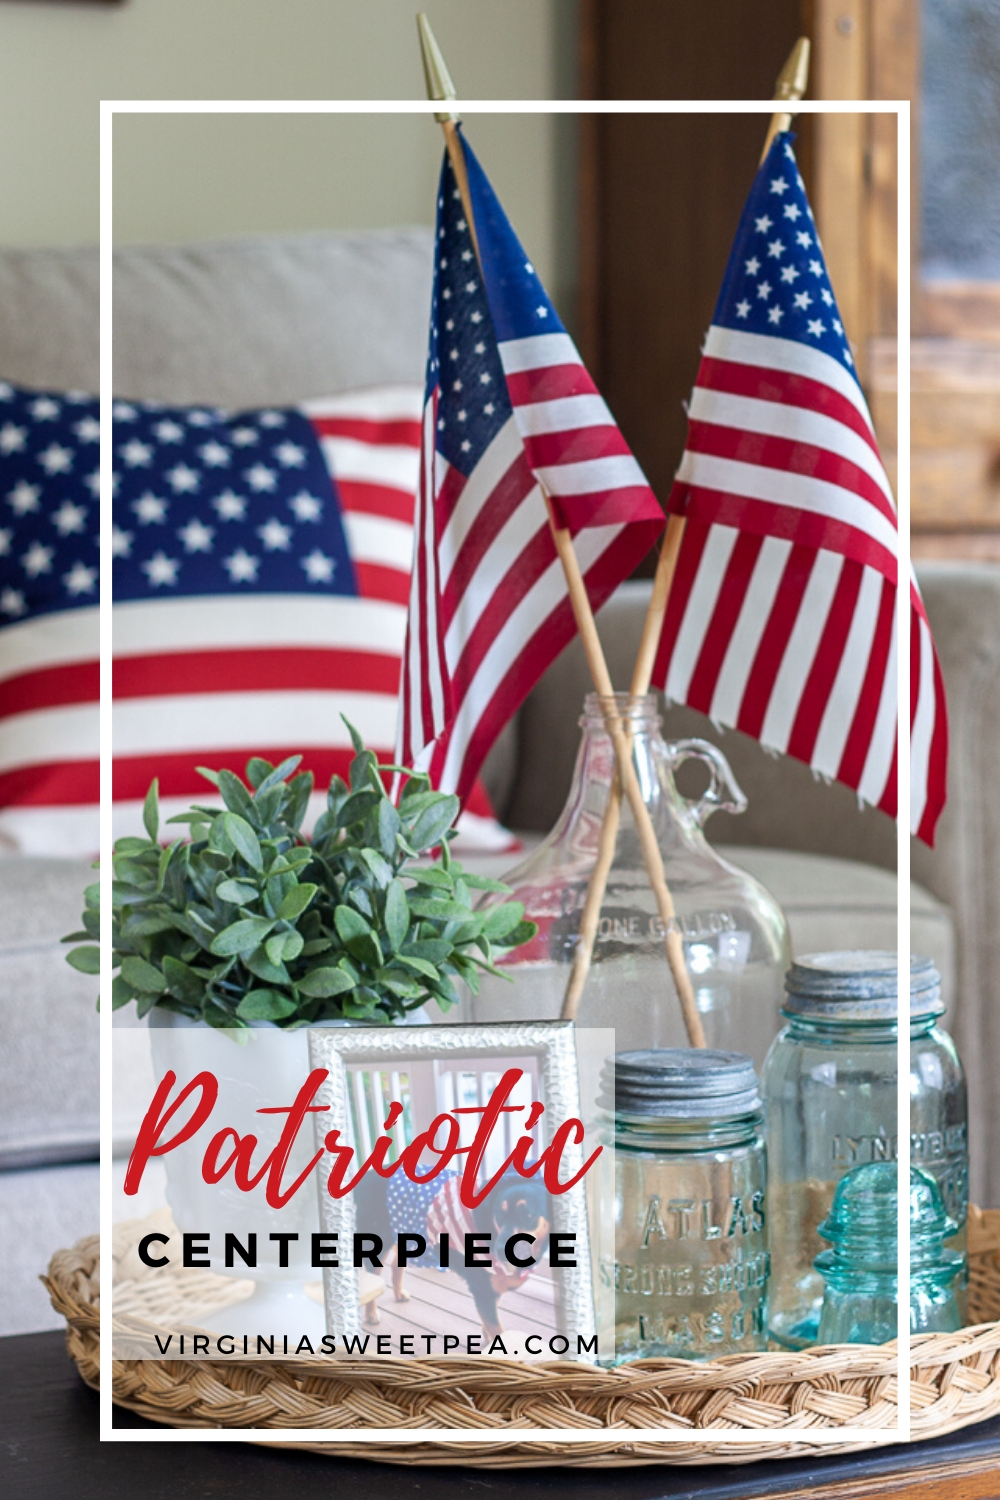 Patriotic Centerpiece - Celebrate patriotic holidays with a patriotic centerpiece using vintage and American flags.  #patriotic #patrioticcenterpiece #patrioticvignette #patrioticdecor #4thofjulydecor #4thofjulycenterpiece #virginiasweetpea #shermanskulina via @spaula